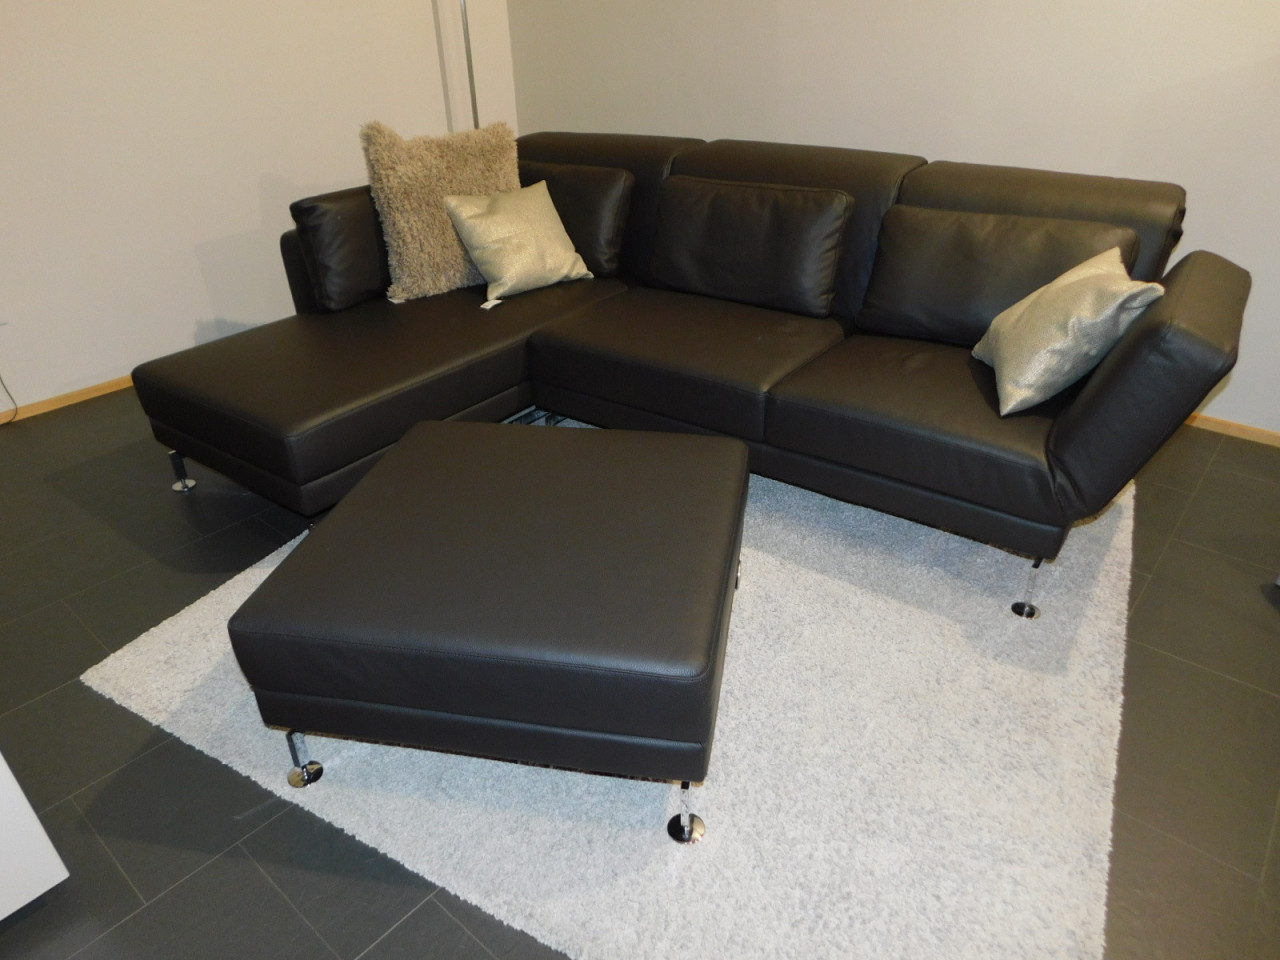 br hl sofa moule in leder unit dunkelbraun designerm bel hohentengen. Black Bedroom Furniture Sets. Home Design Ideas